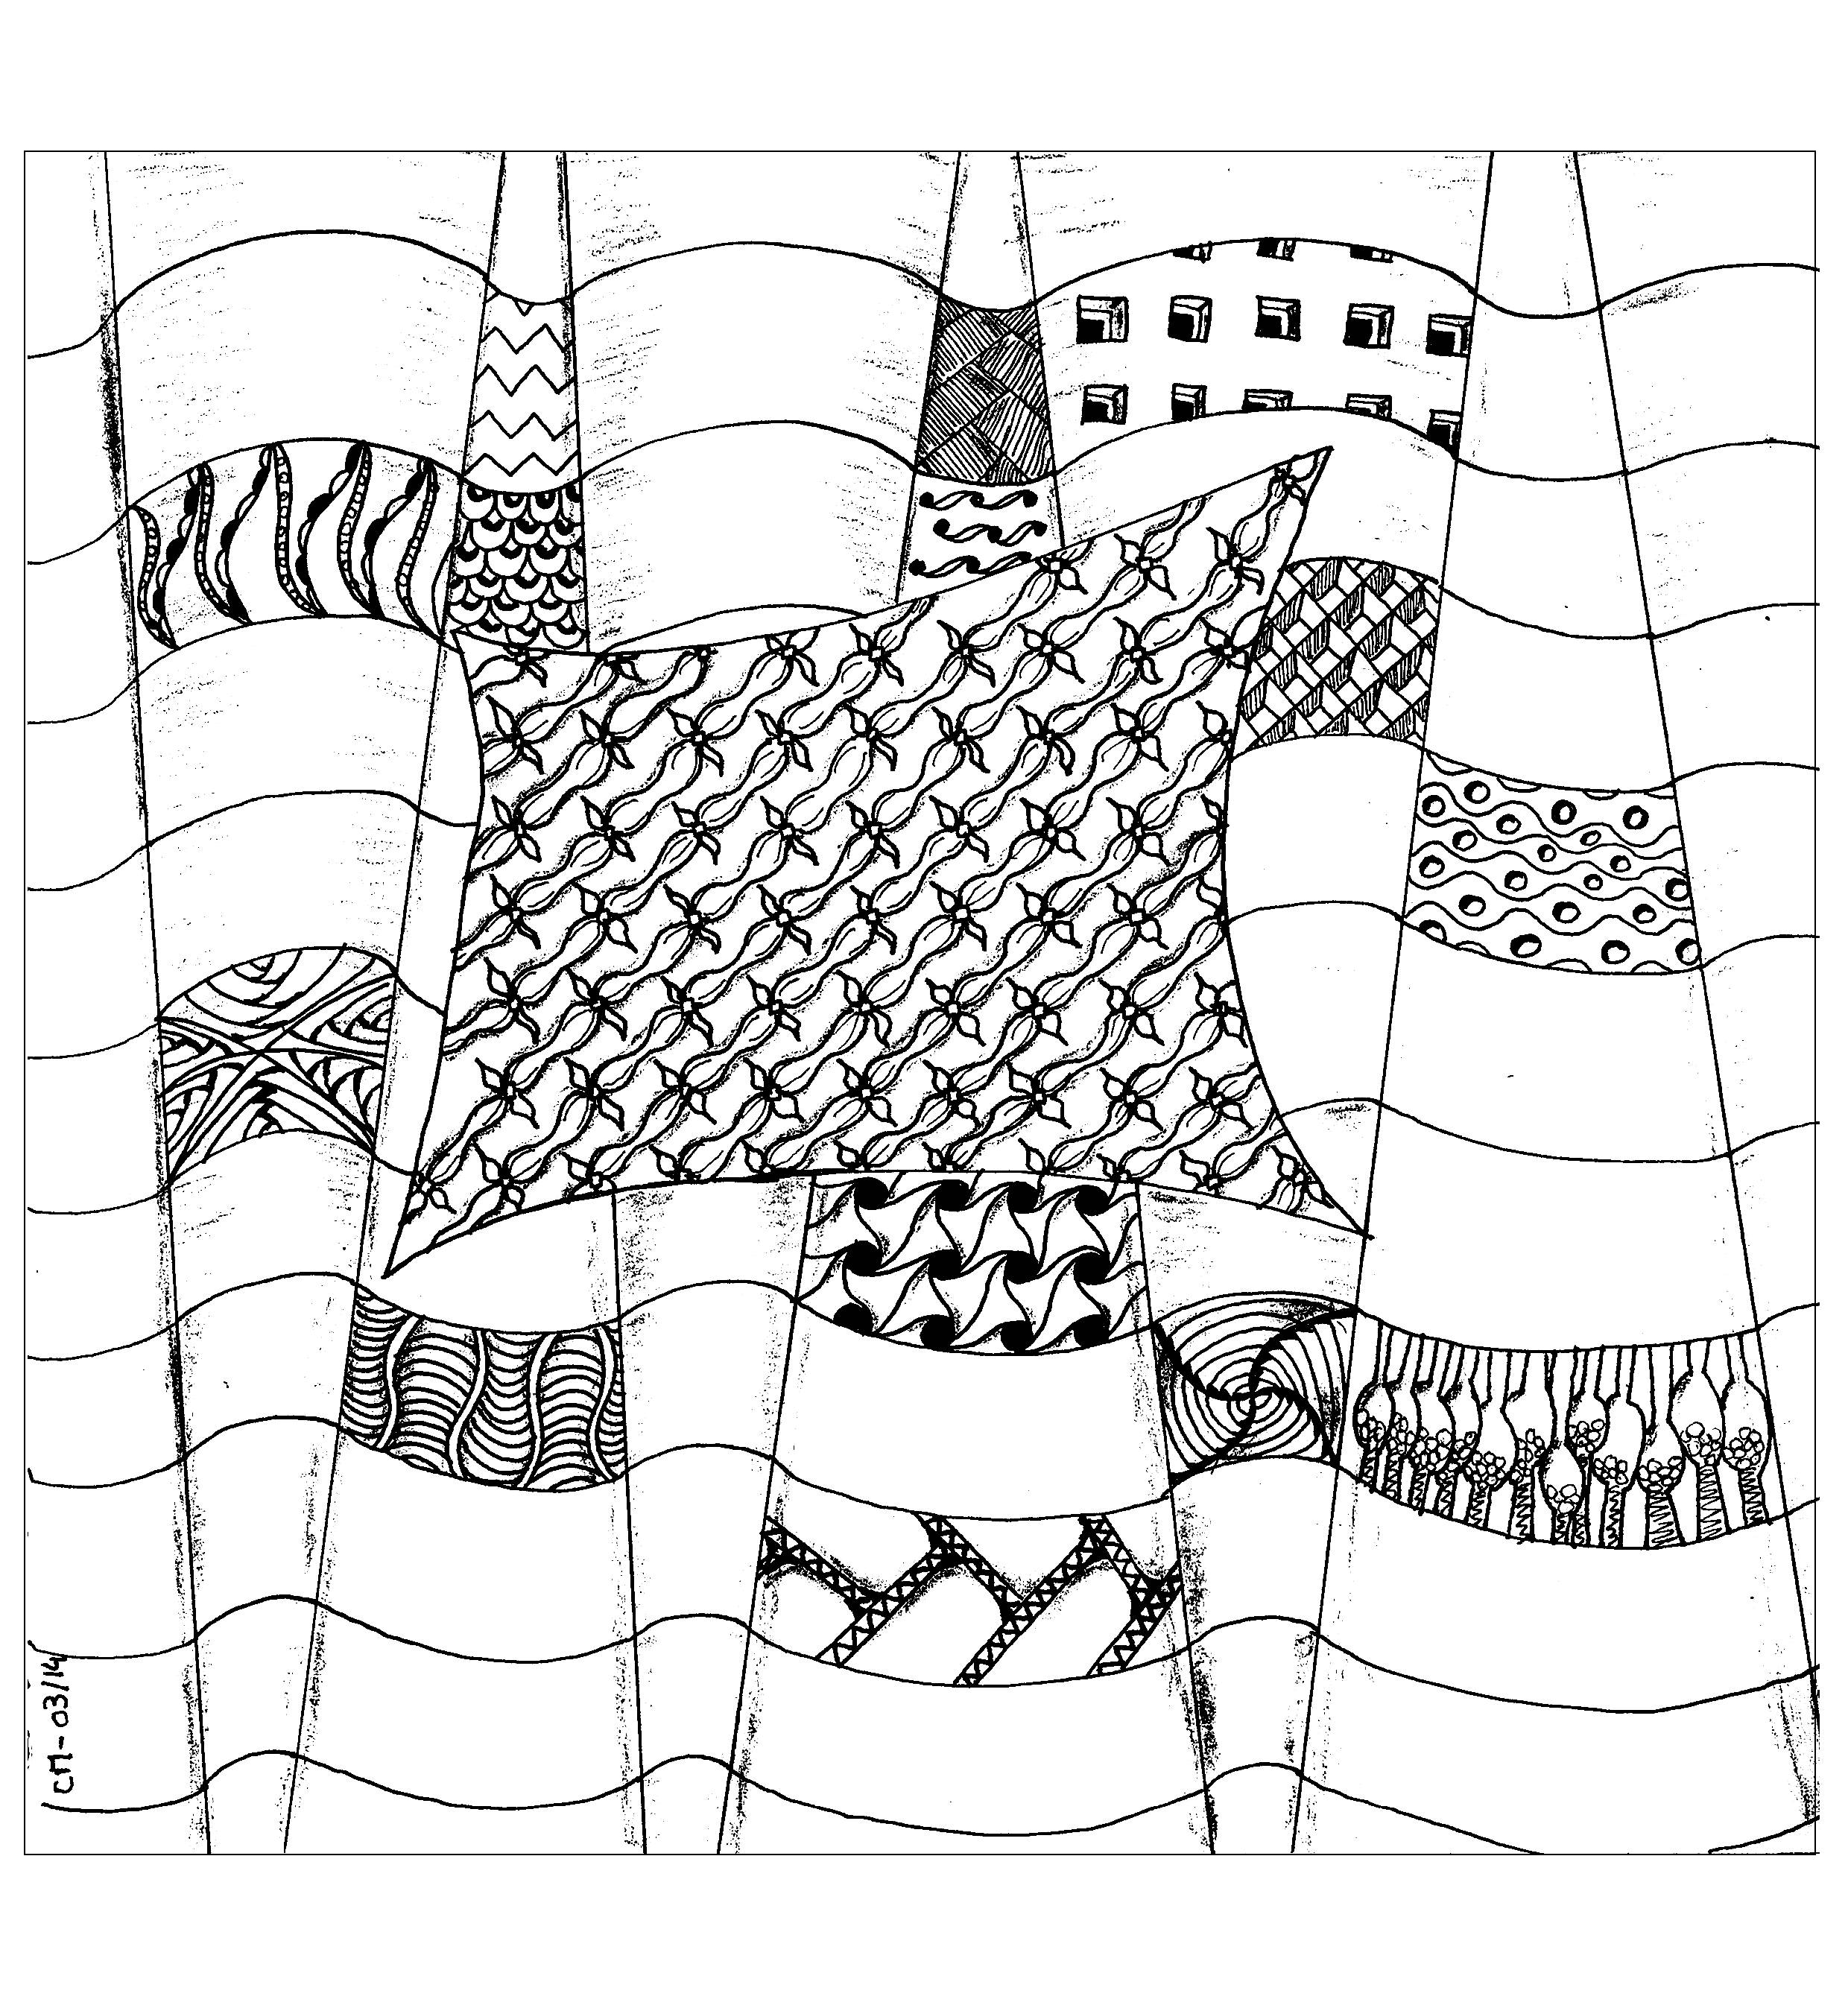 'Abstraction', exclusive zentangle coloring page See the original work